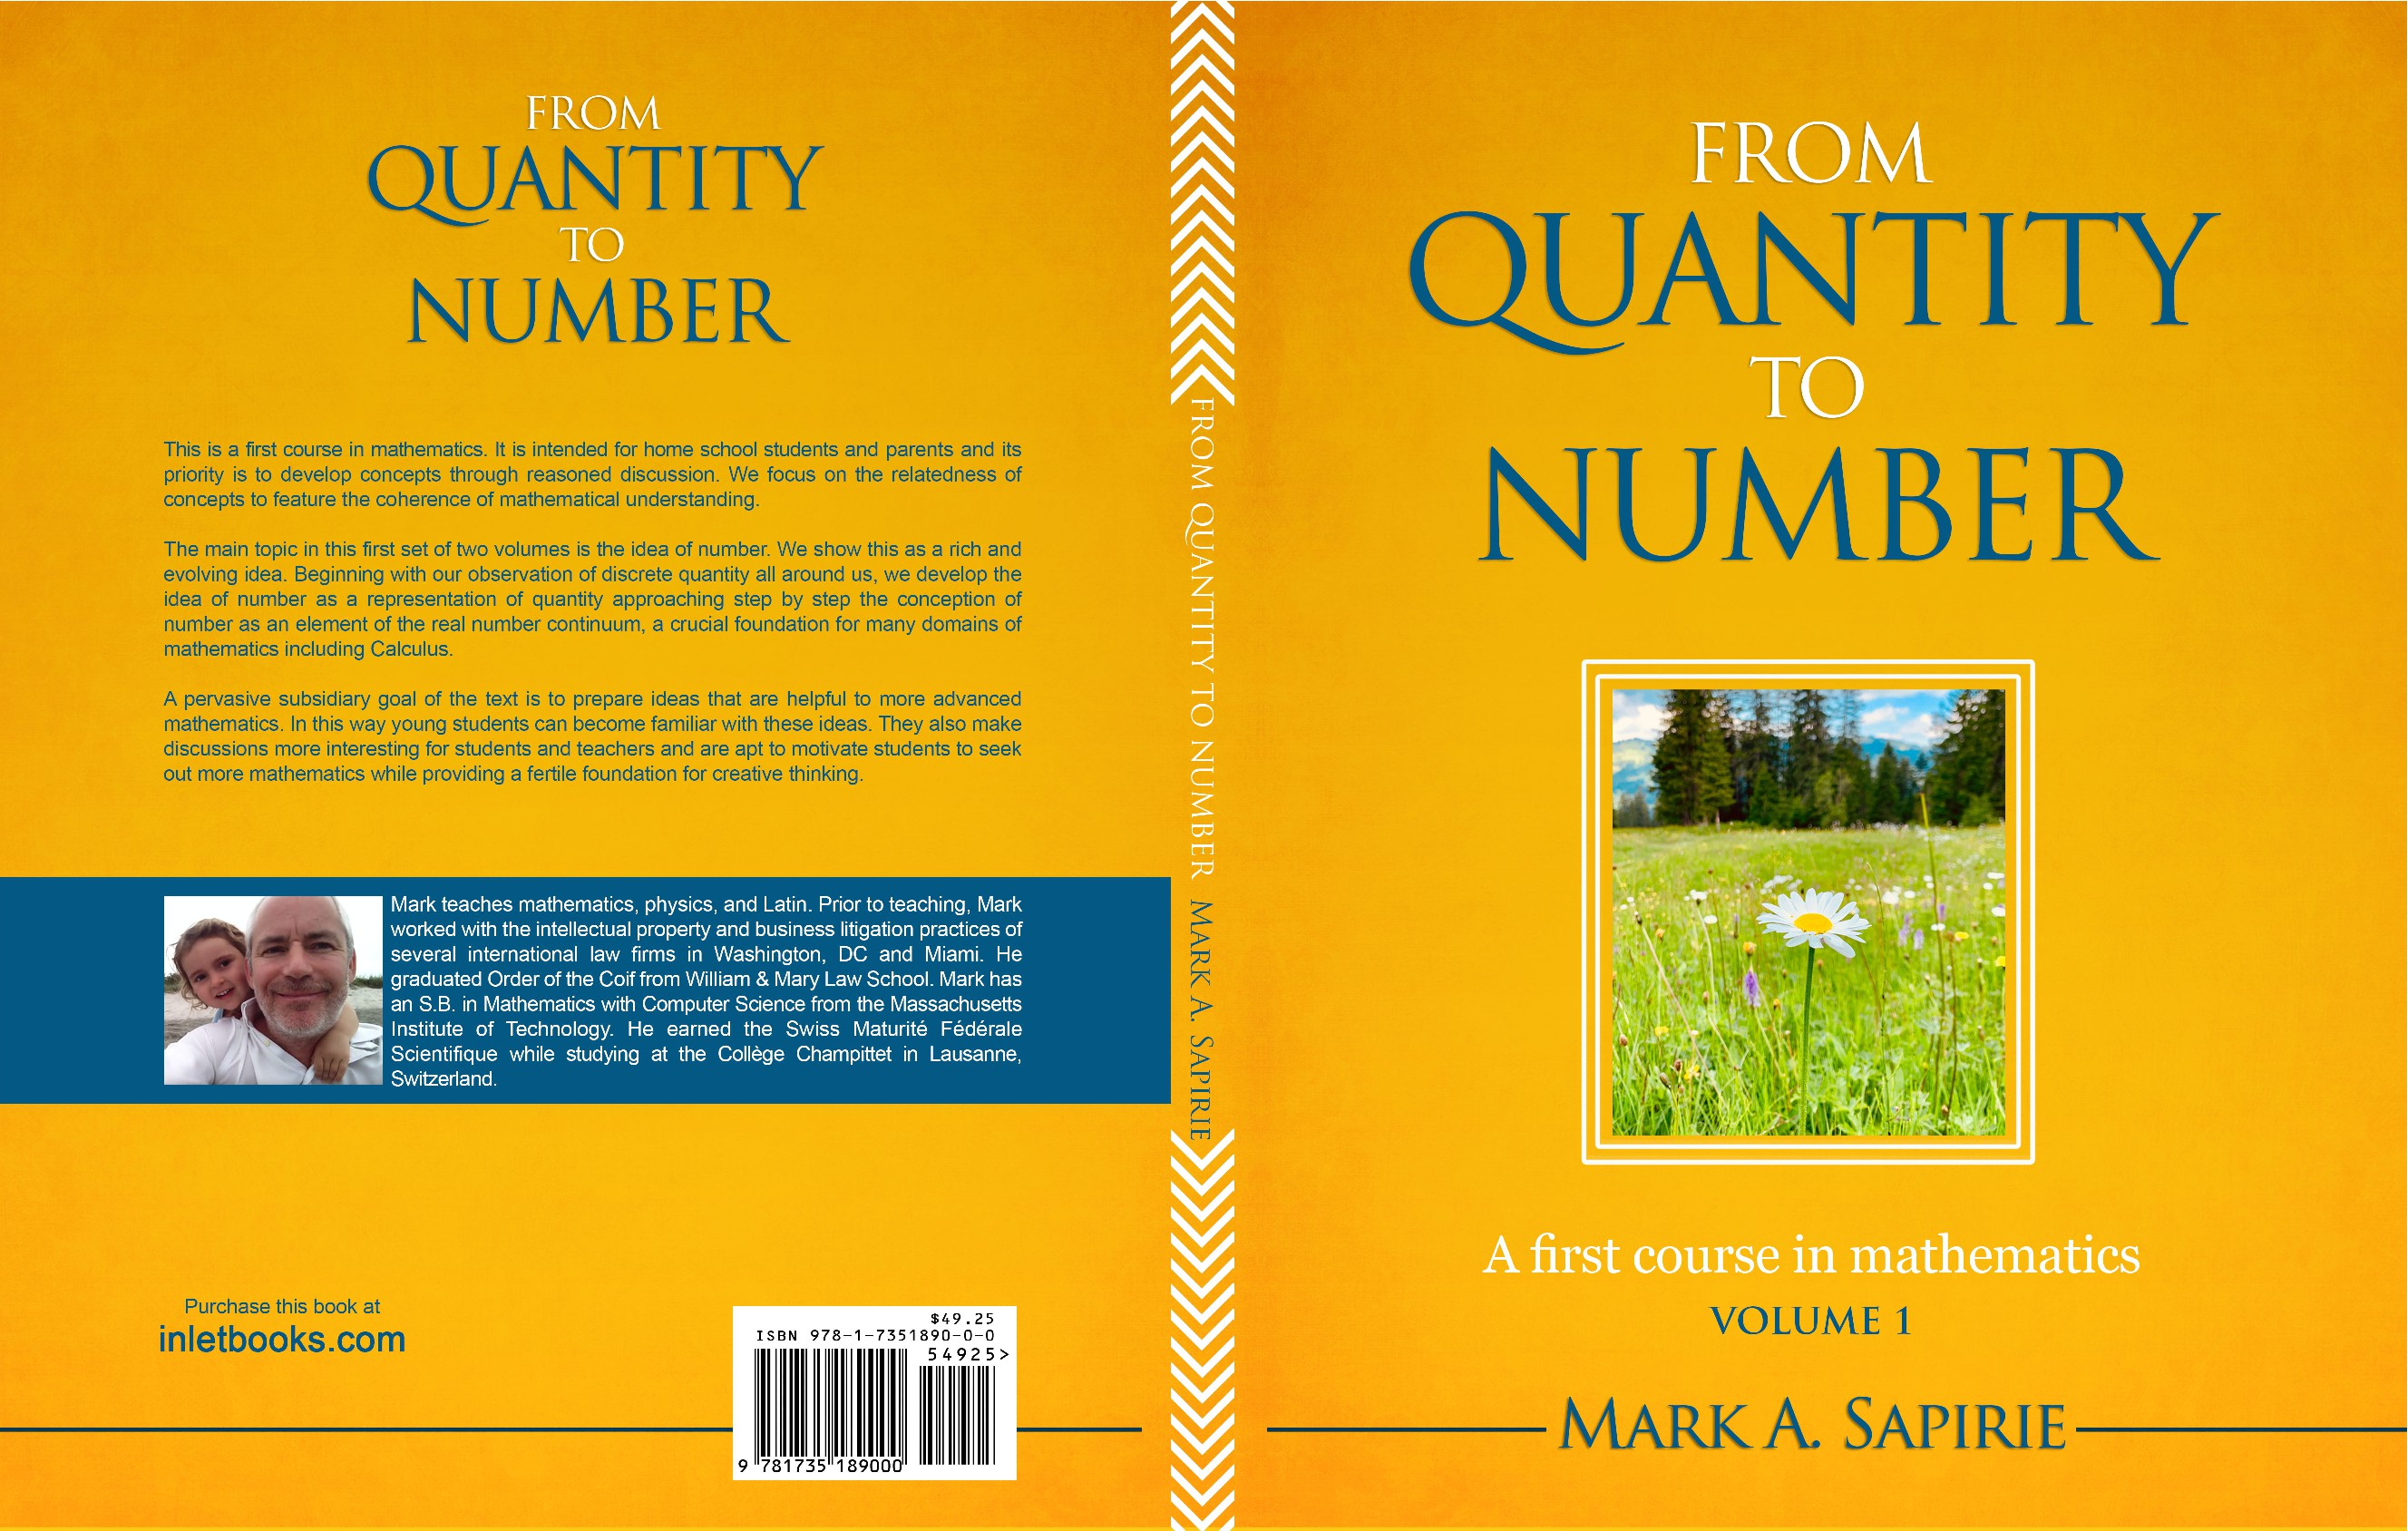 An elegant book cover design for a first course in mathematics